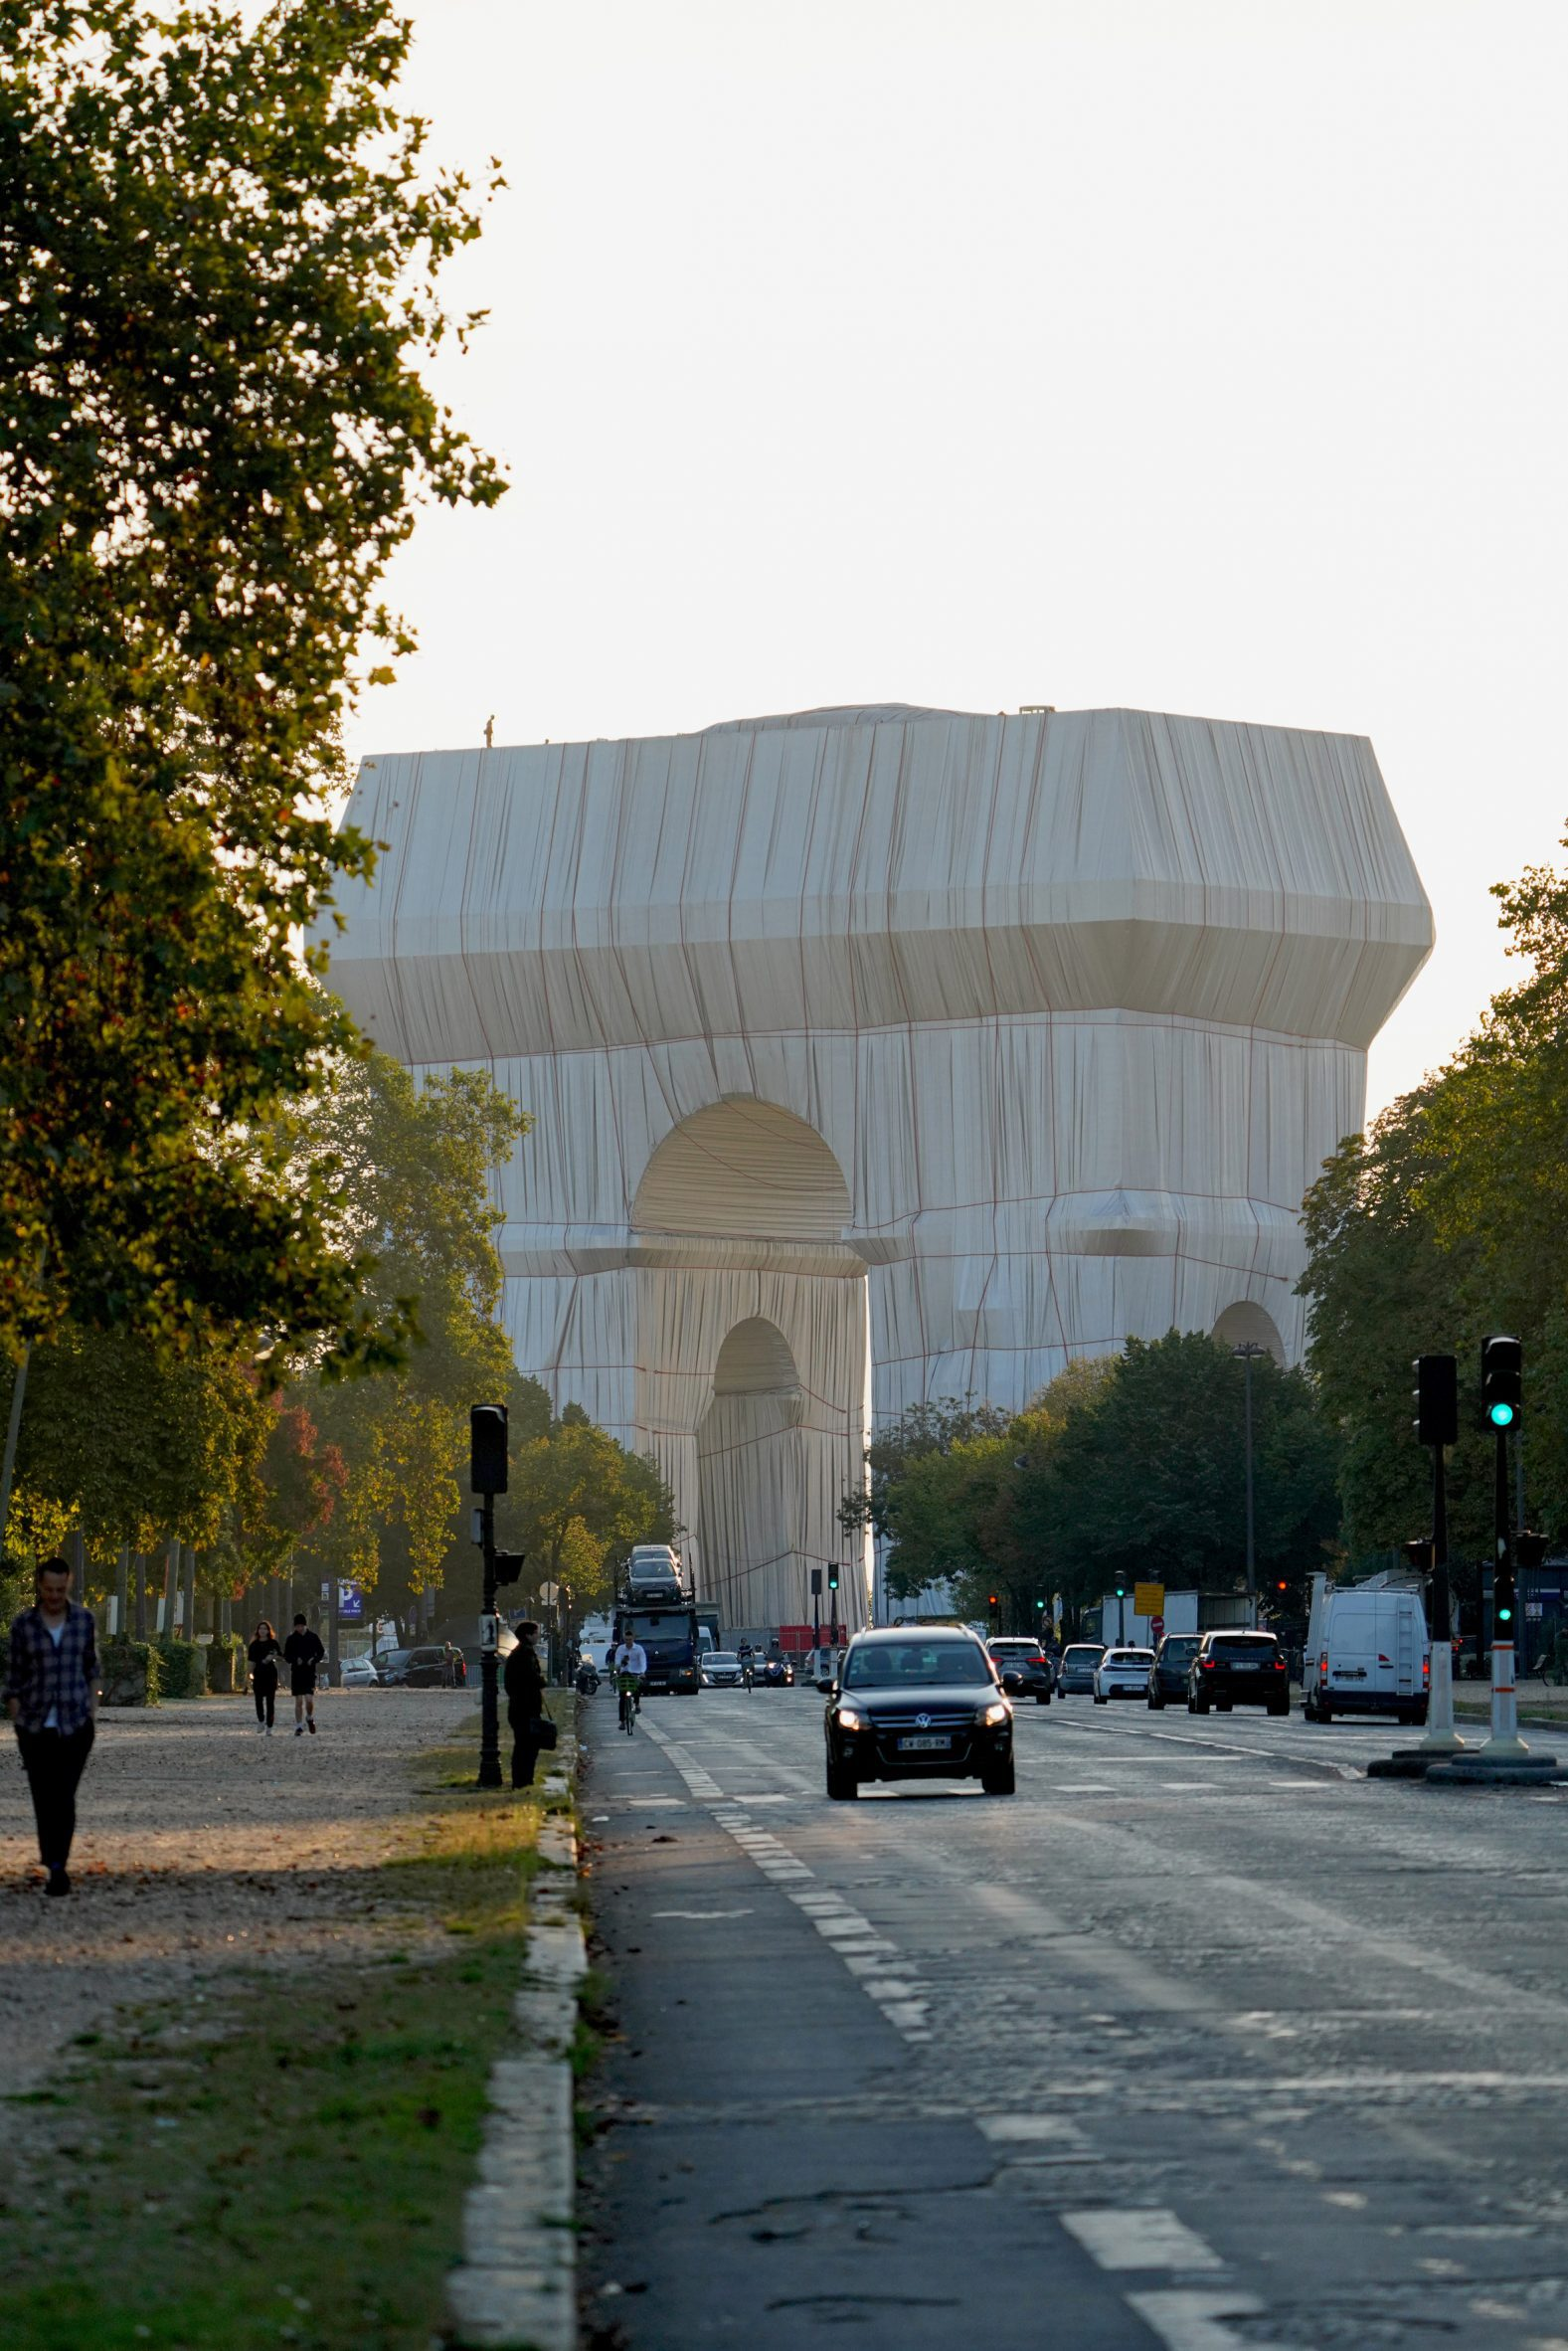 The Arch de Triomphe covered in fabric